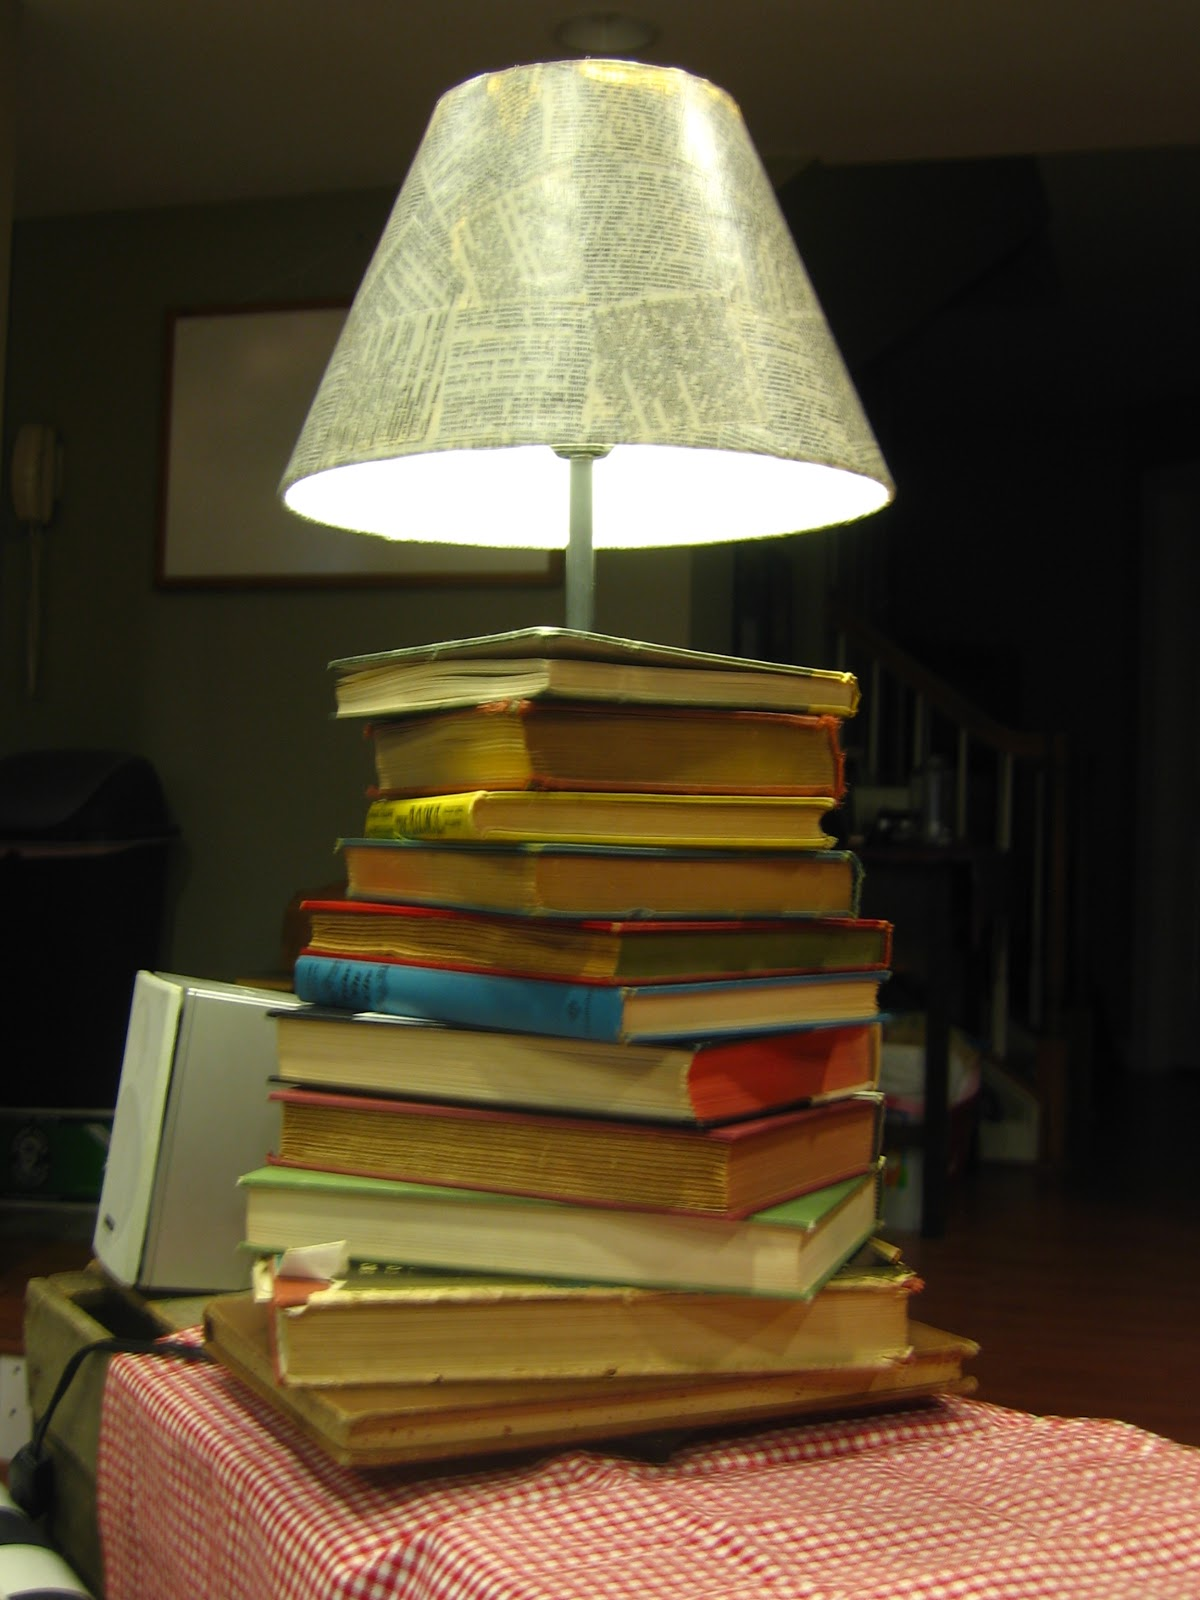 Boog Lamp Mari Makes: Project - Book Lamp Deluxe!